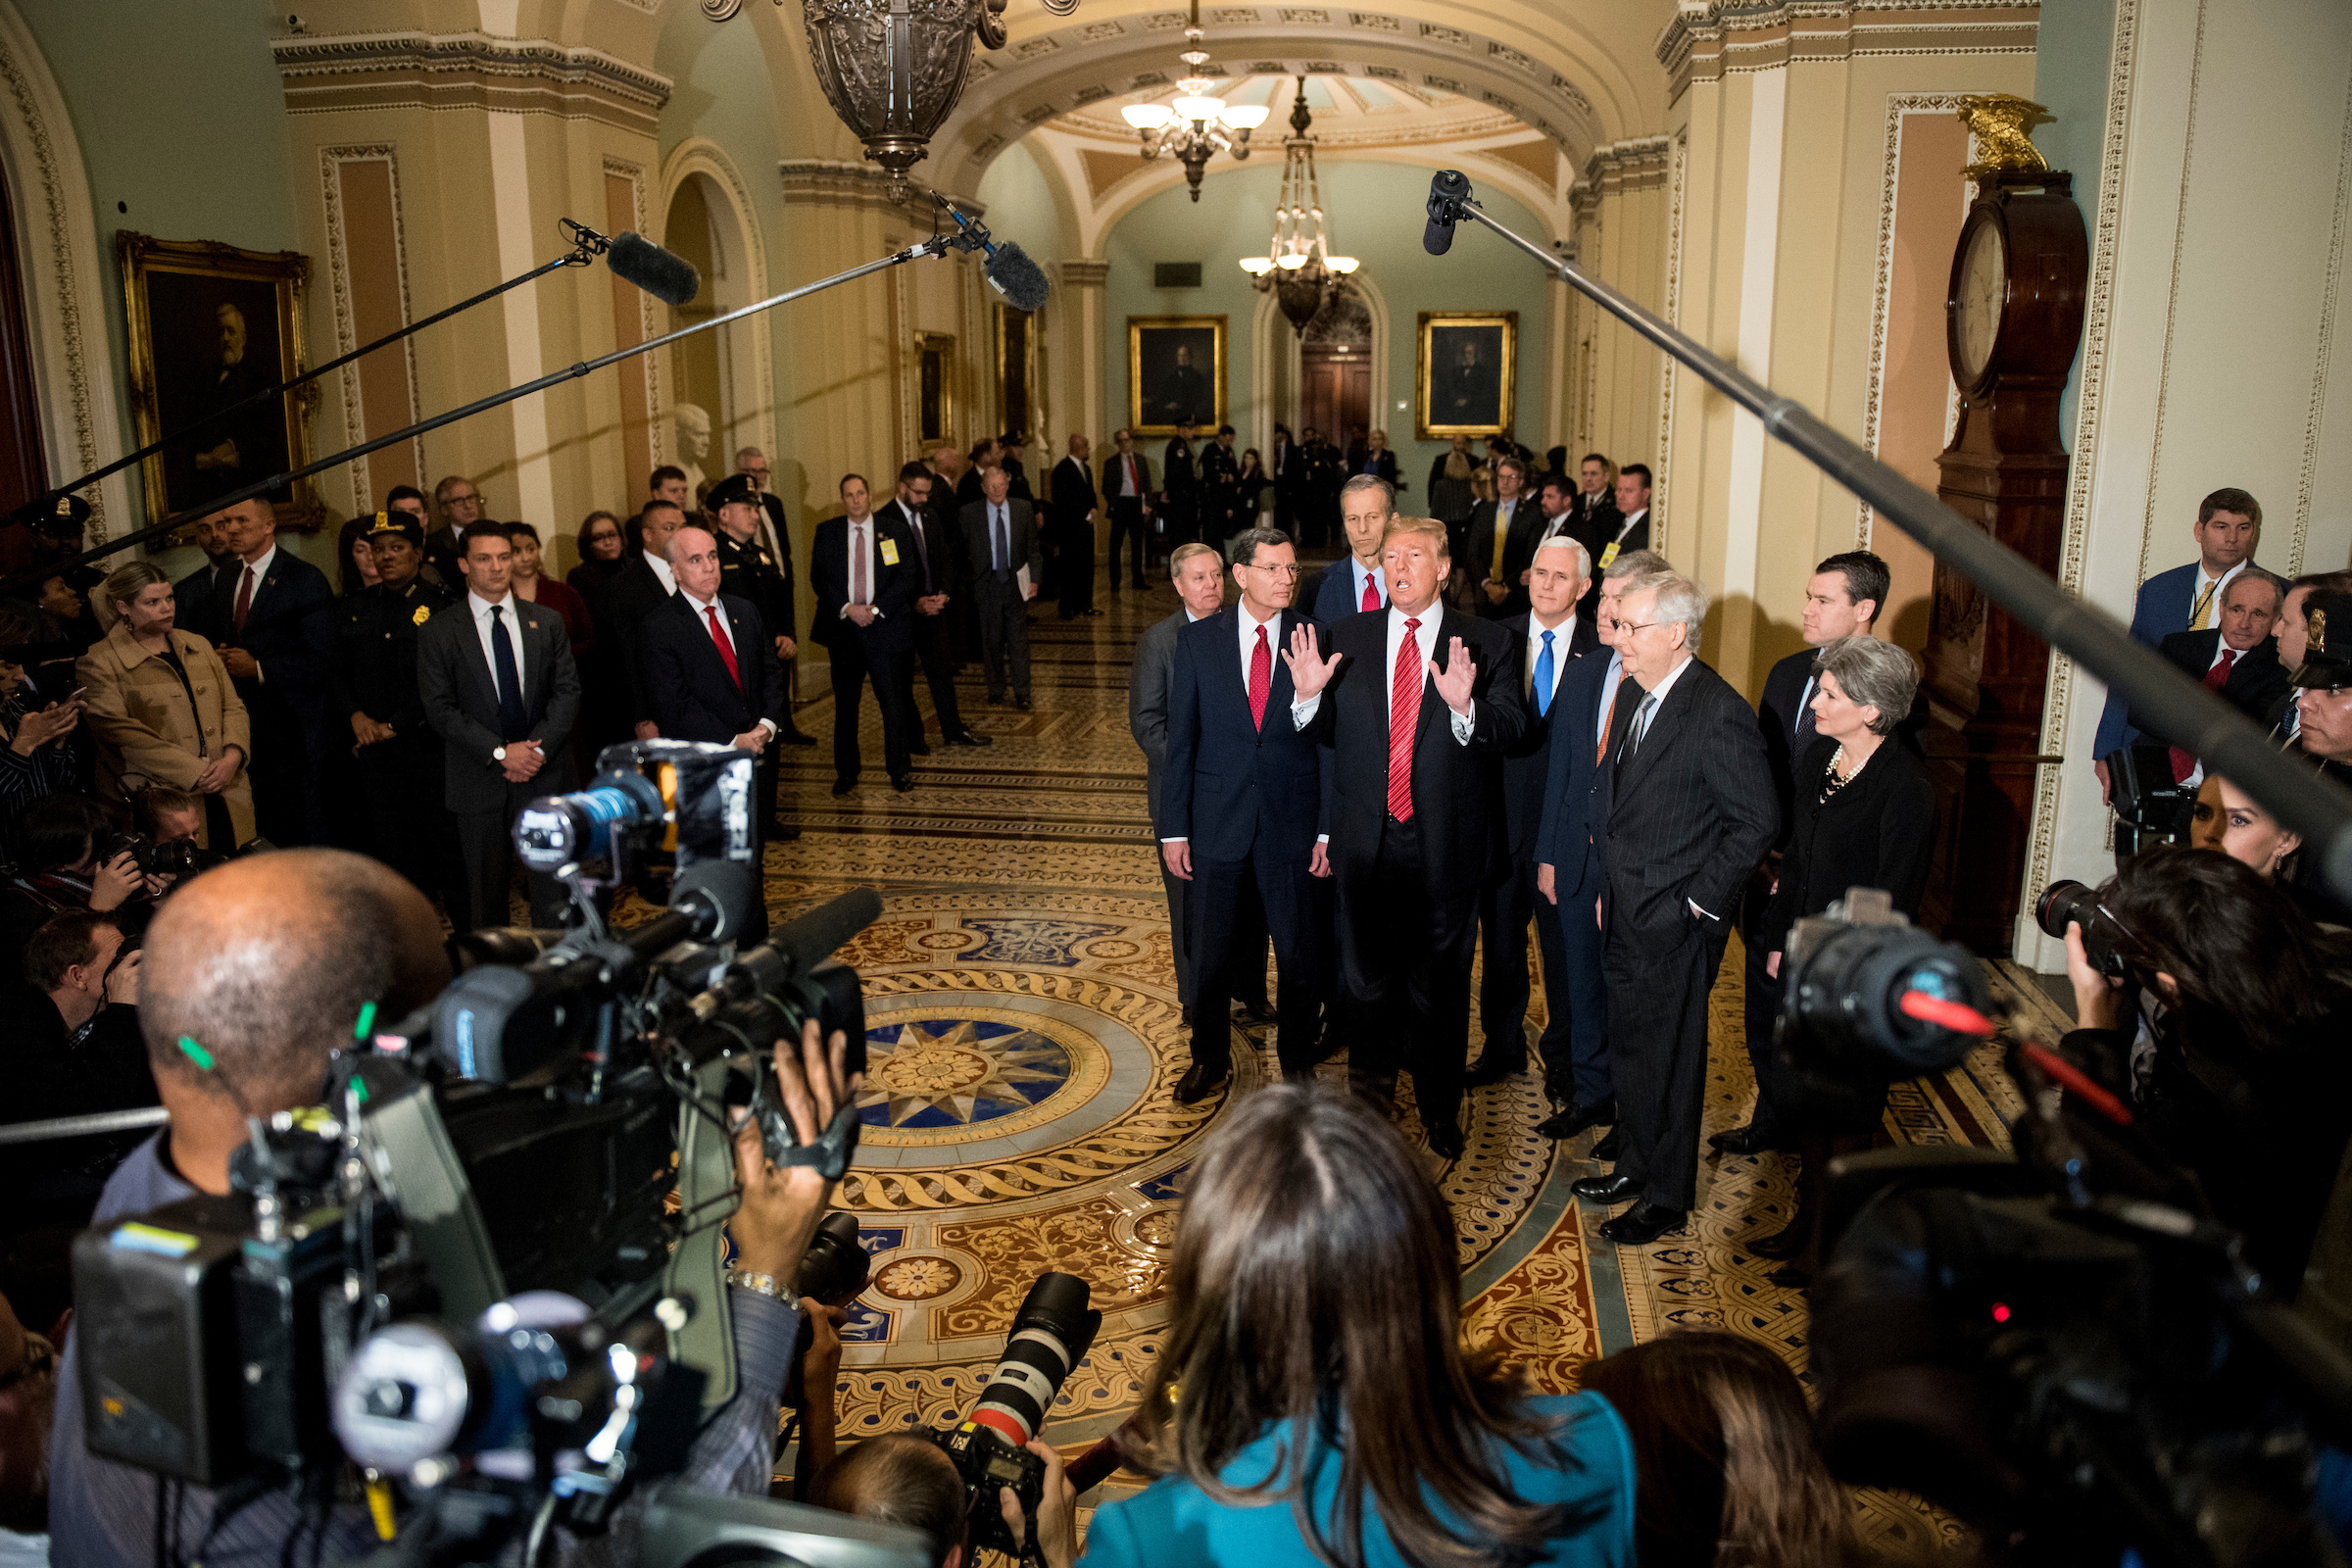 UNITED STATES - JANUARY 9: President Donald Trump, flanked from left by Sen. Lindsey Graham, R-S.C., Sen. John Barrasso, R-Wyo., Sen. John Thune, R-S. Dak., Vice President Mike Pence, Sen. Roy Blunt, R-Mo., Senate Majority Leader Mitch McConnell, R-Ky., Sen. Todd Young, R-Ind., and Sen. Joni Ernst, R-Iowa, stops to speak to the cameras following his lunch with Senate Republicans in the Capitol on Wed. Jan. 9, 2018. (Photo By Bill Clark/CQ Roll Call)